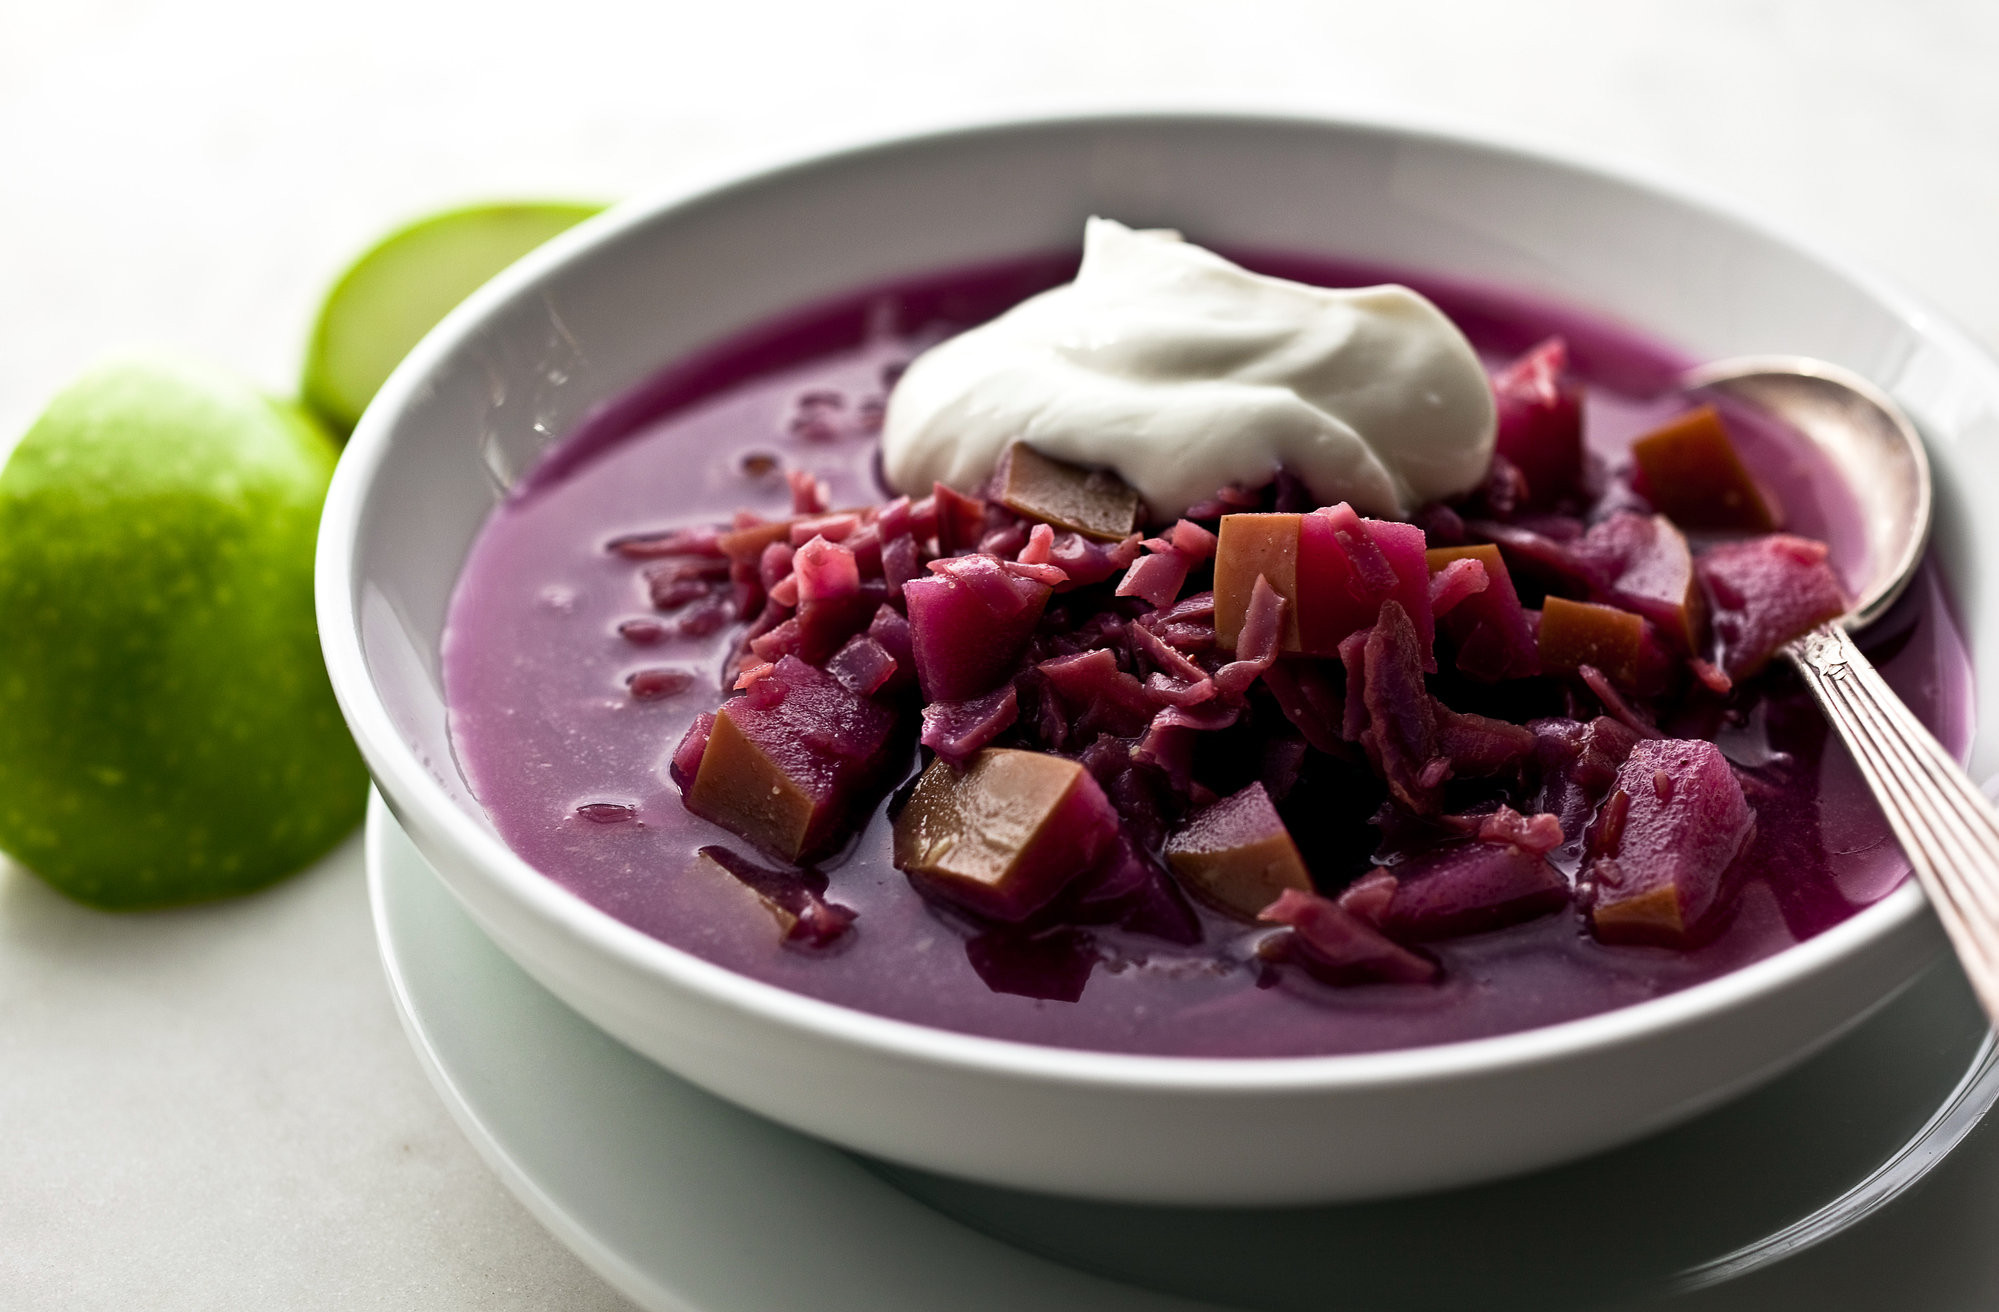 Healthy Red Cabbage Recipes  Red Cabbage and Apple Soup Recipe NYT Cooking